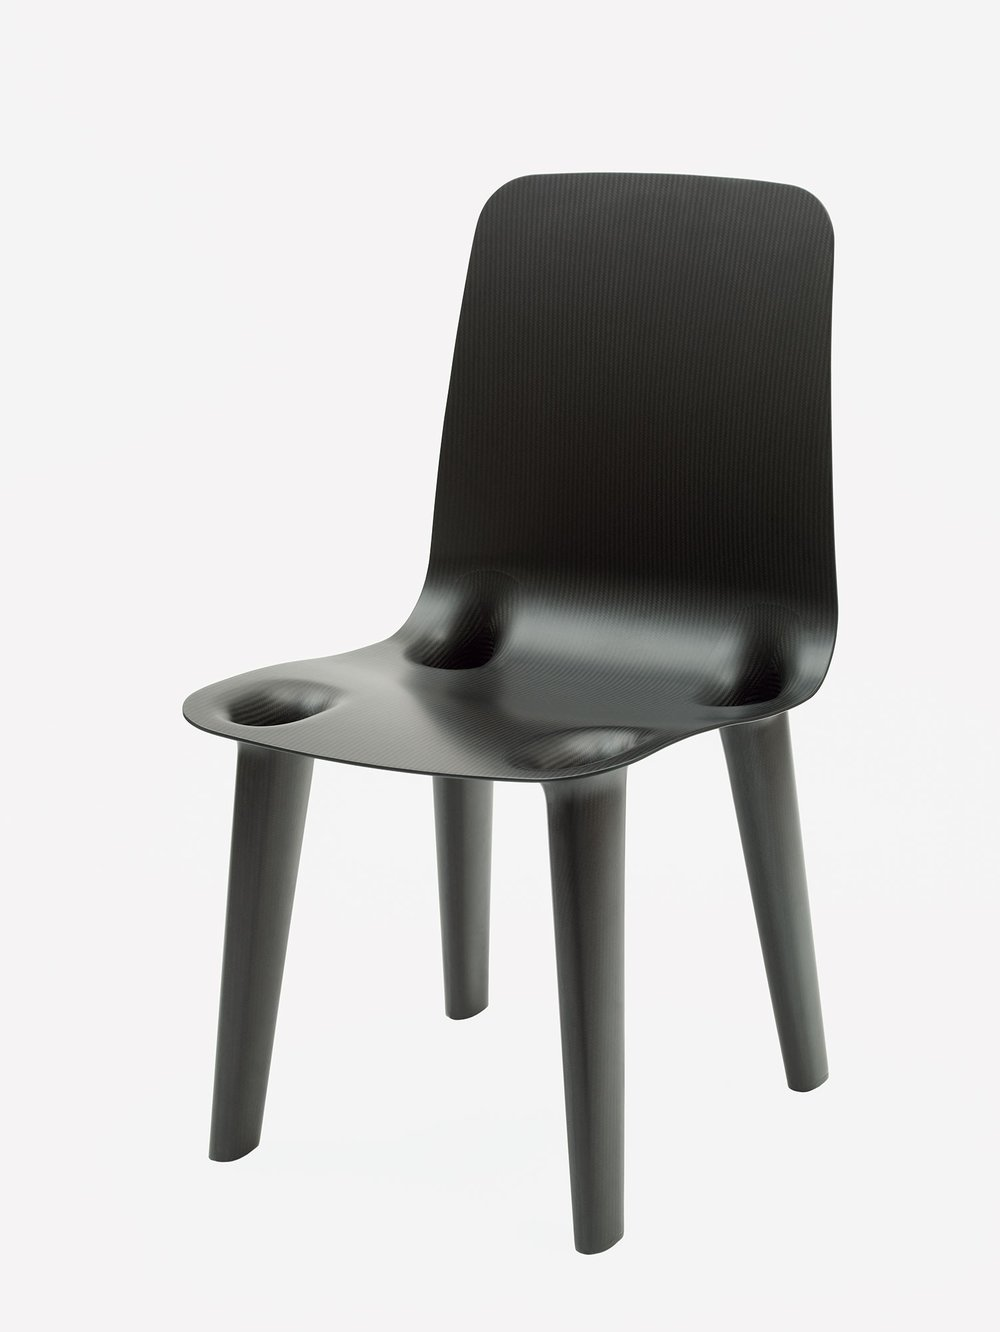 Marc Newson's Carbon Fiber chair, 2000. An edition of 250 were made.